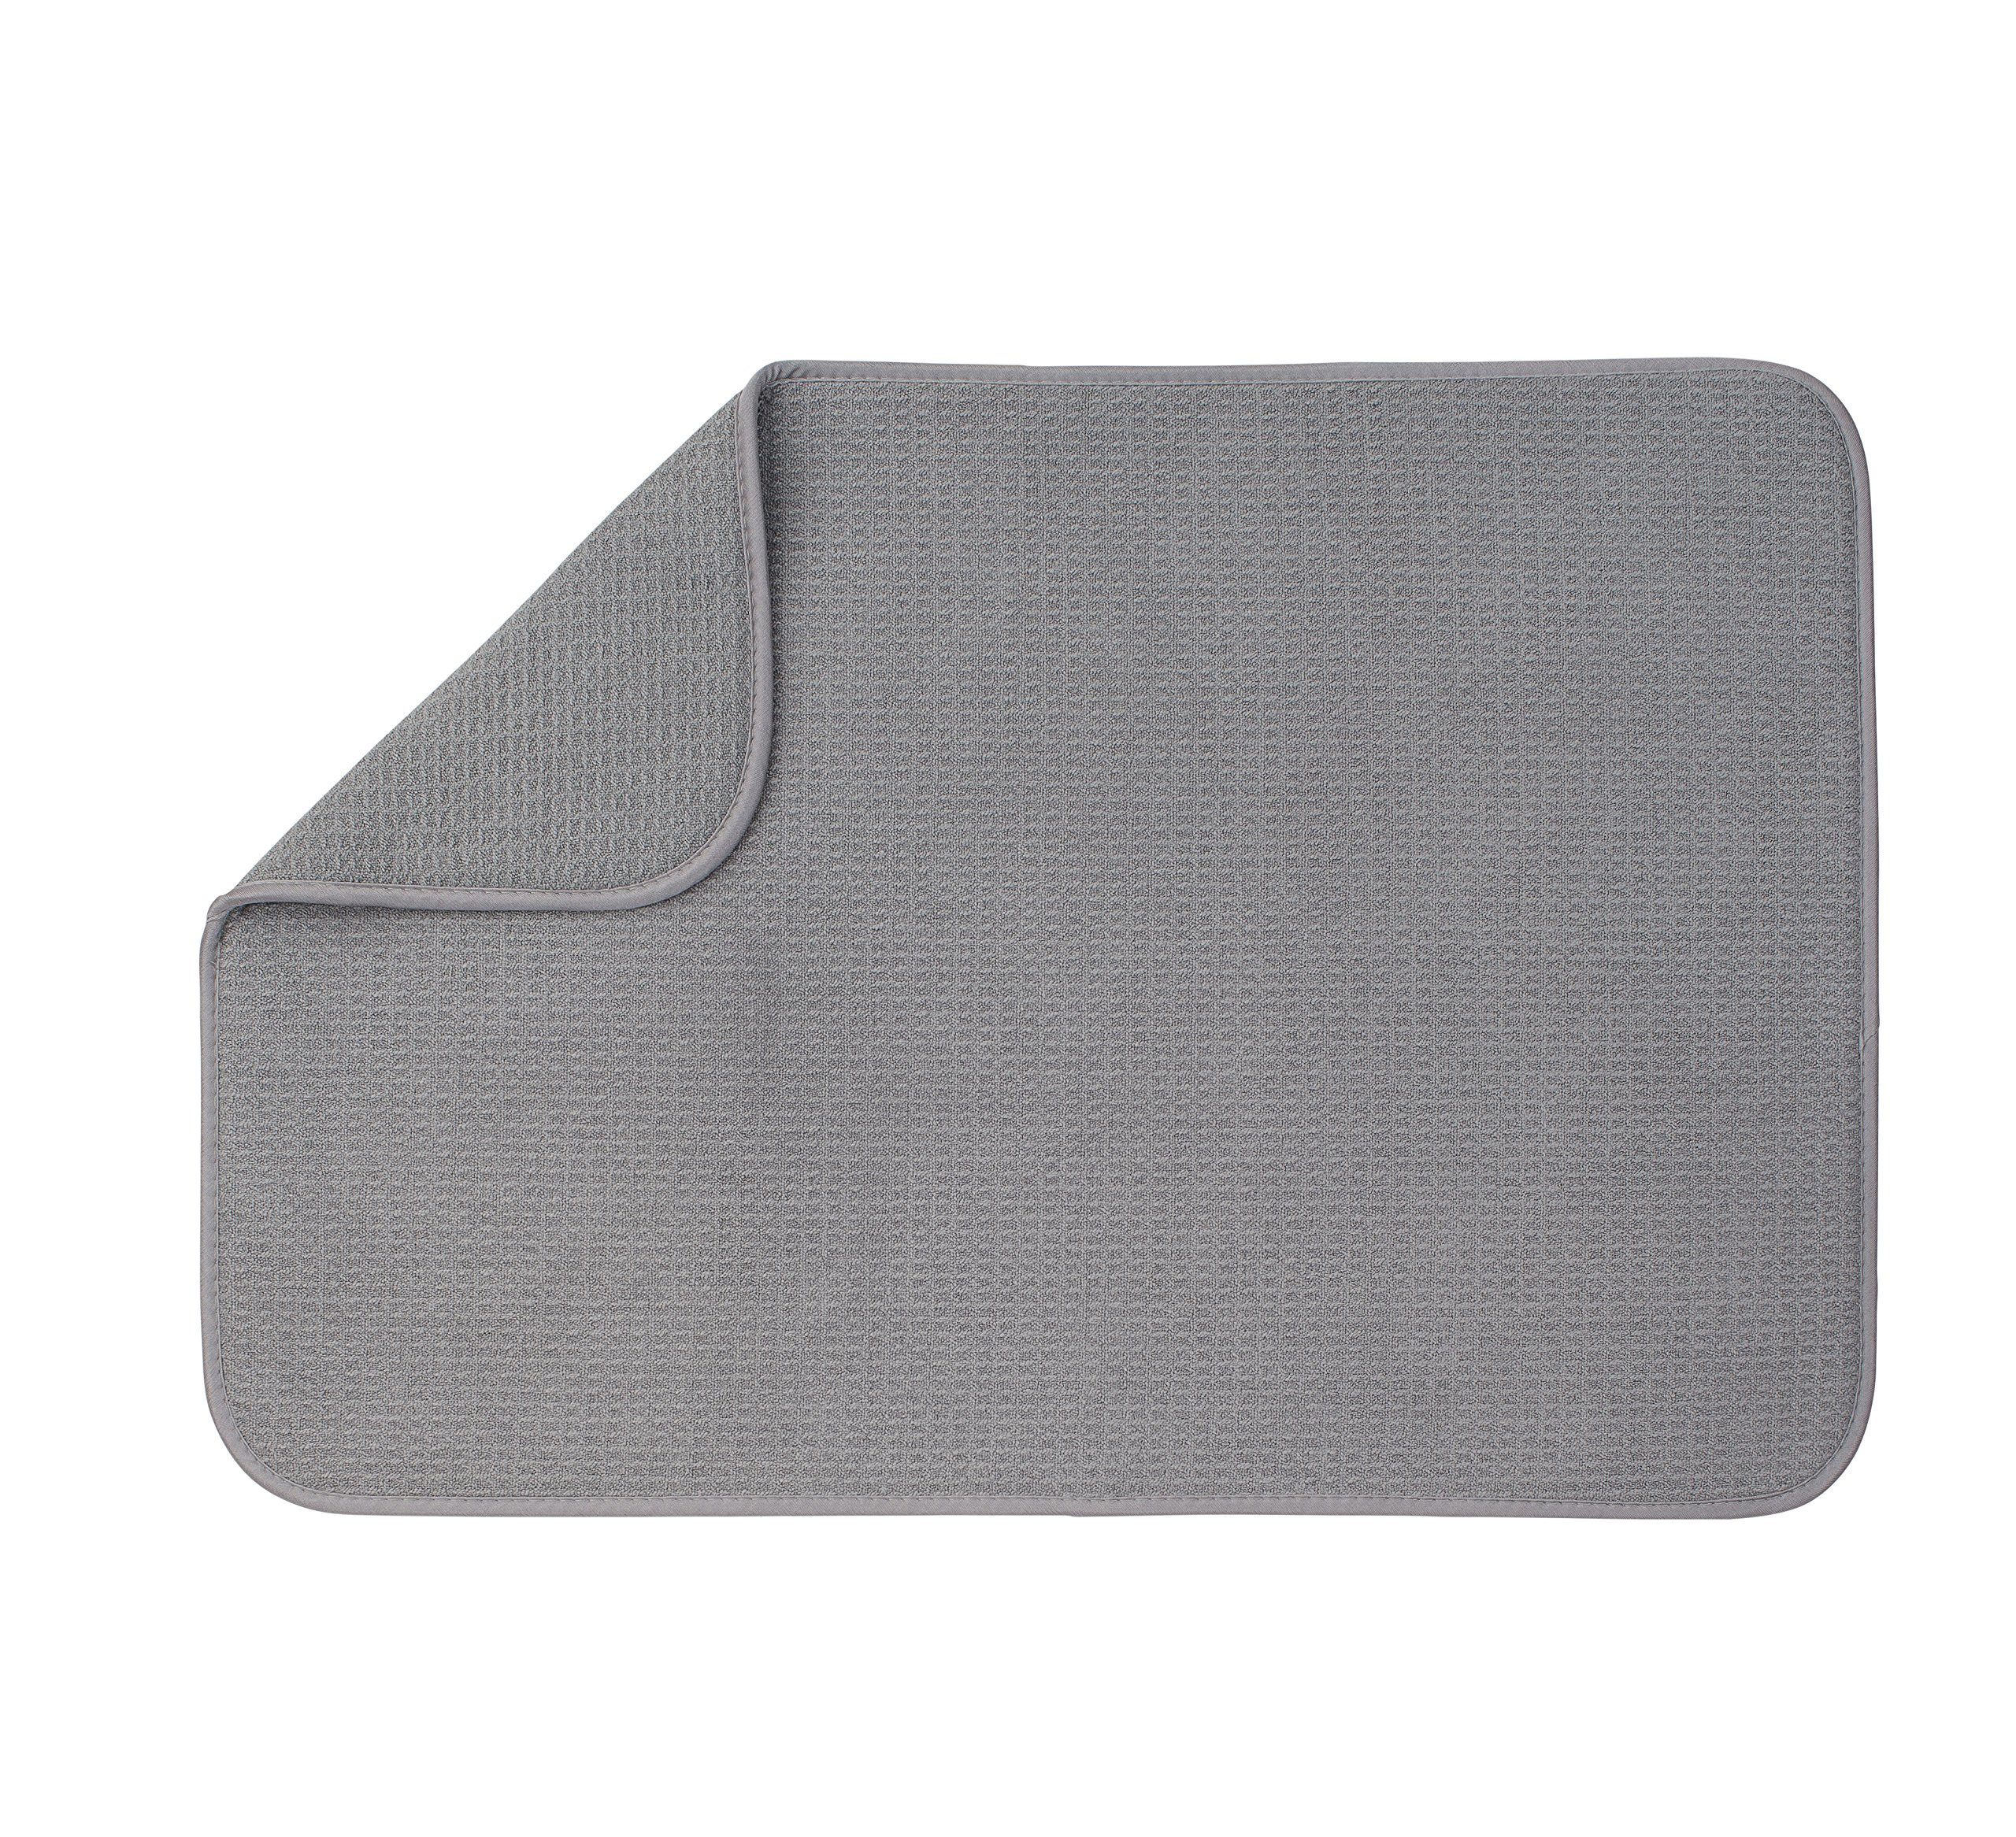 XXL Dish Mat 24'' x 17'' (LARGEST MAT) Microfiber Dish Drying Mat, Super absorbent by Bellemain